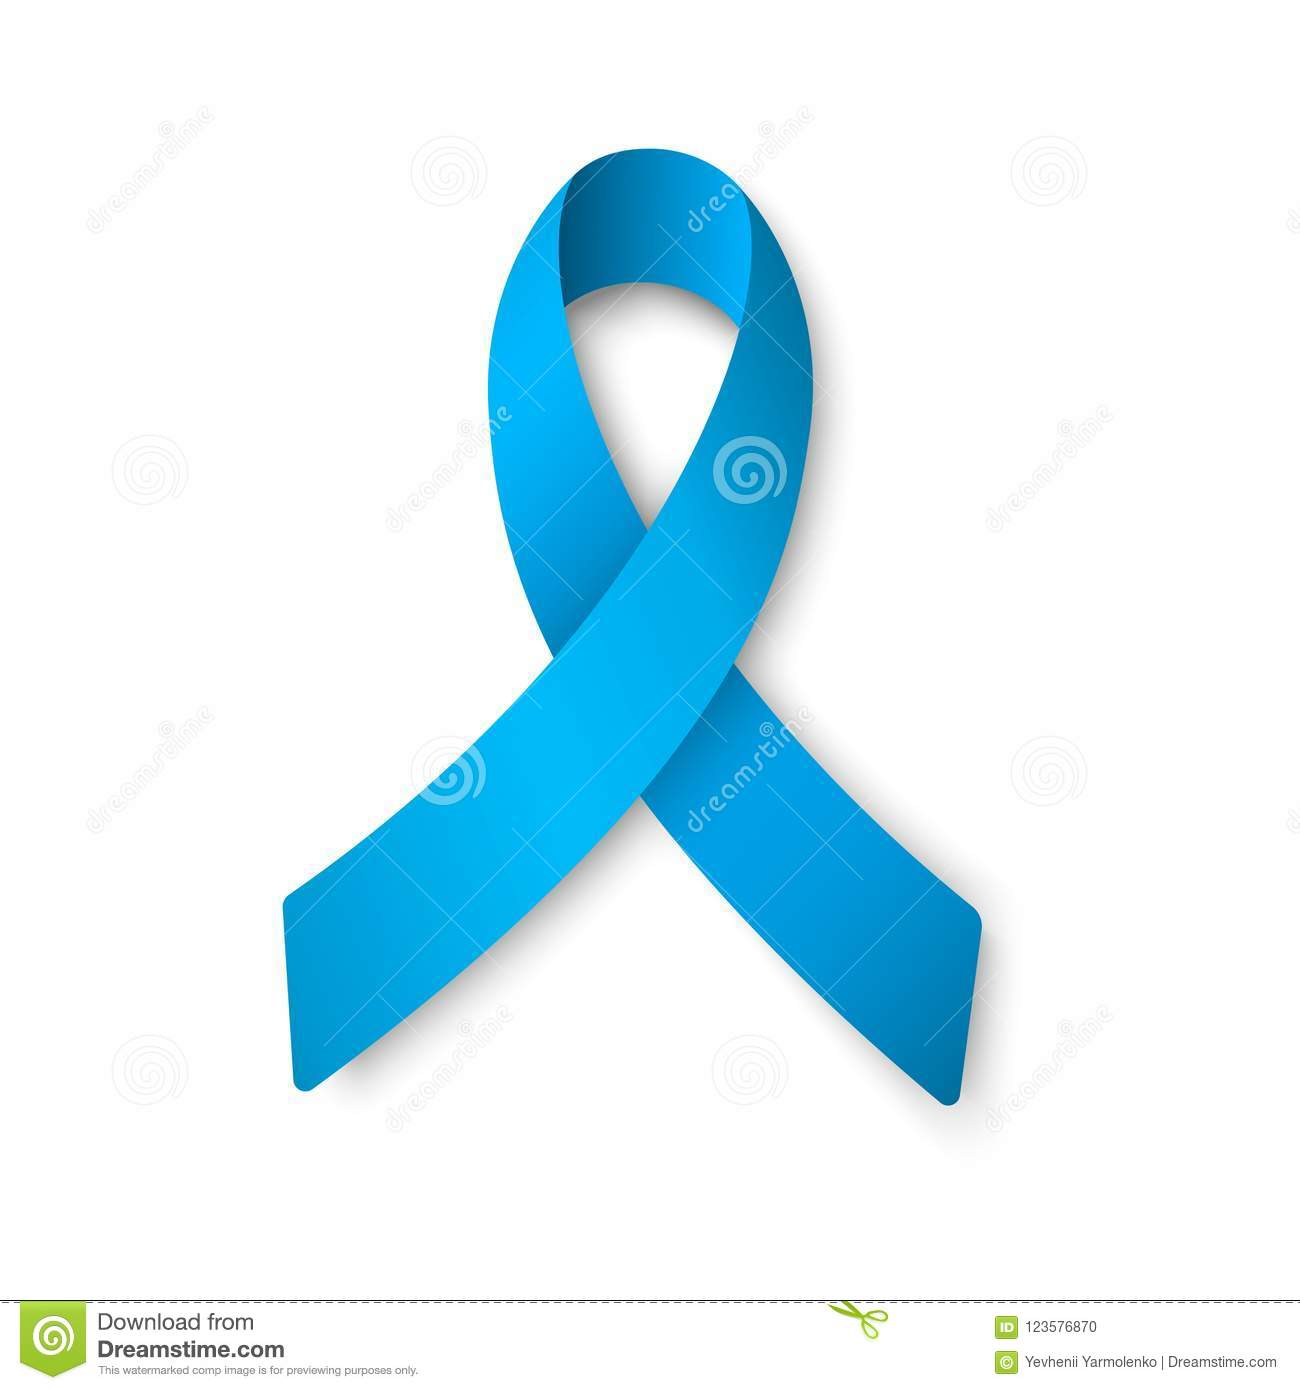 Realistic blue ribbon. World Prostate Cancer Day concept. Men healthcare concept.